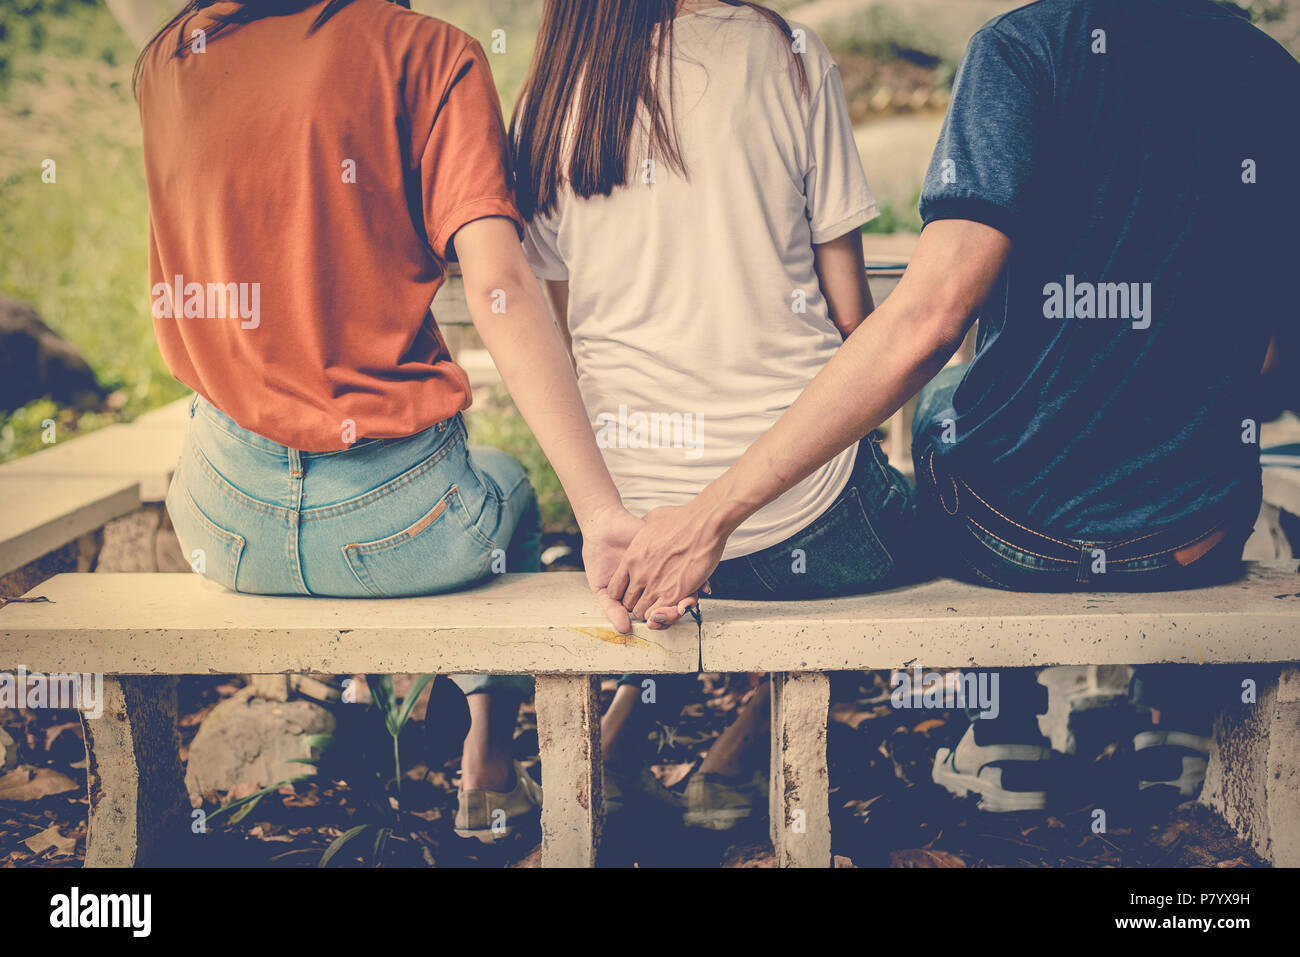 Boyfriend and another woman grab hands from behind together without sight of his girlfriend. Paramour and divorce concept. Social problem and cheating - Stock Image